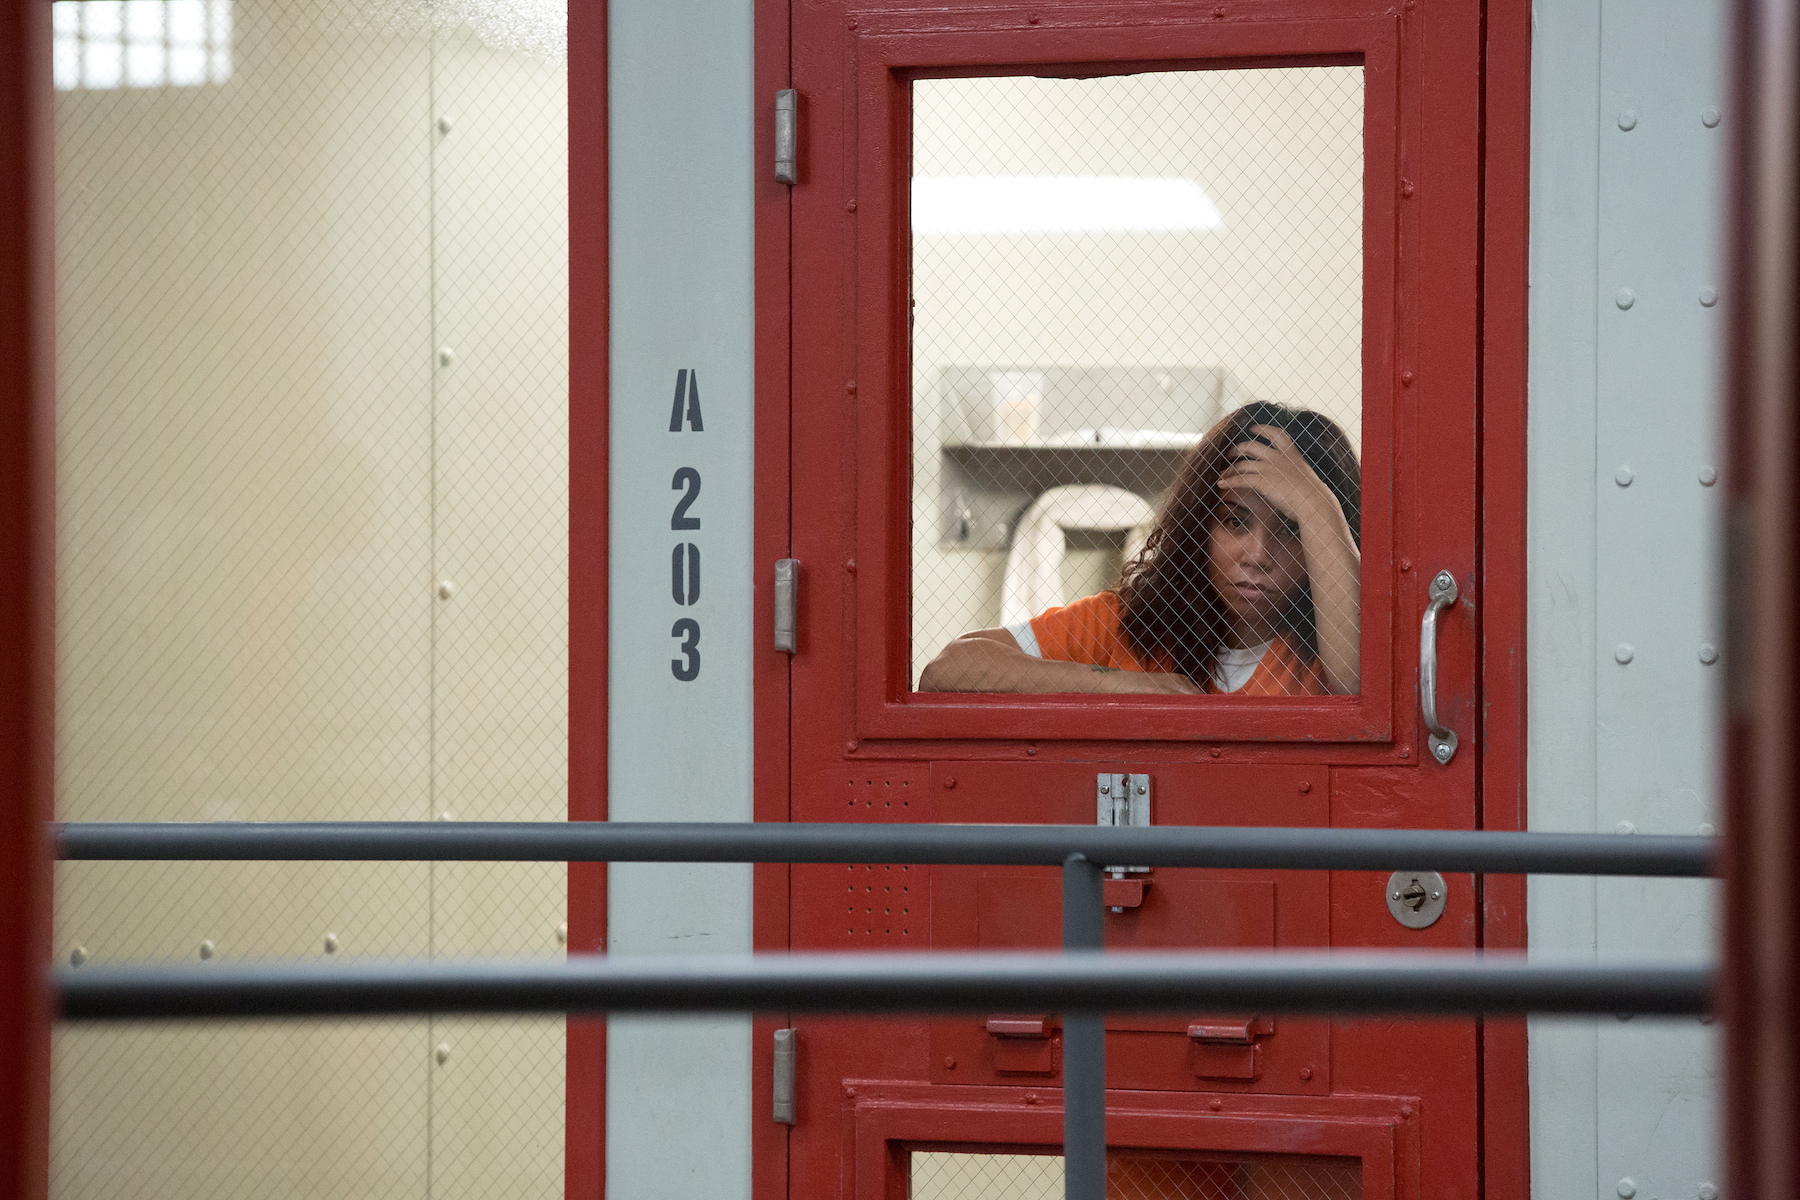 TRAILER: 'Orange Is the New Black's Inmates Moved to Maximum Security, But Maritza Is Missing